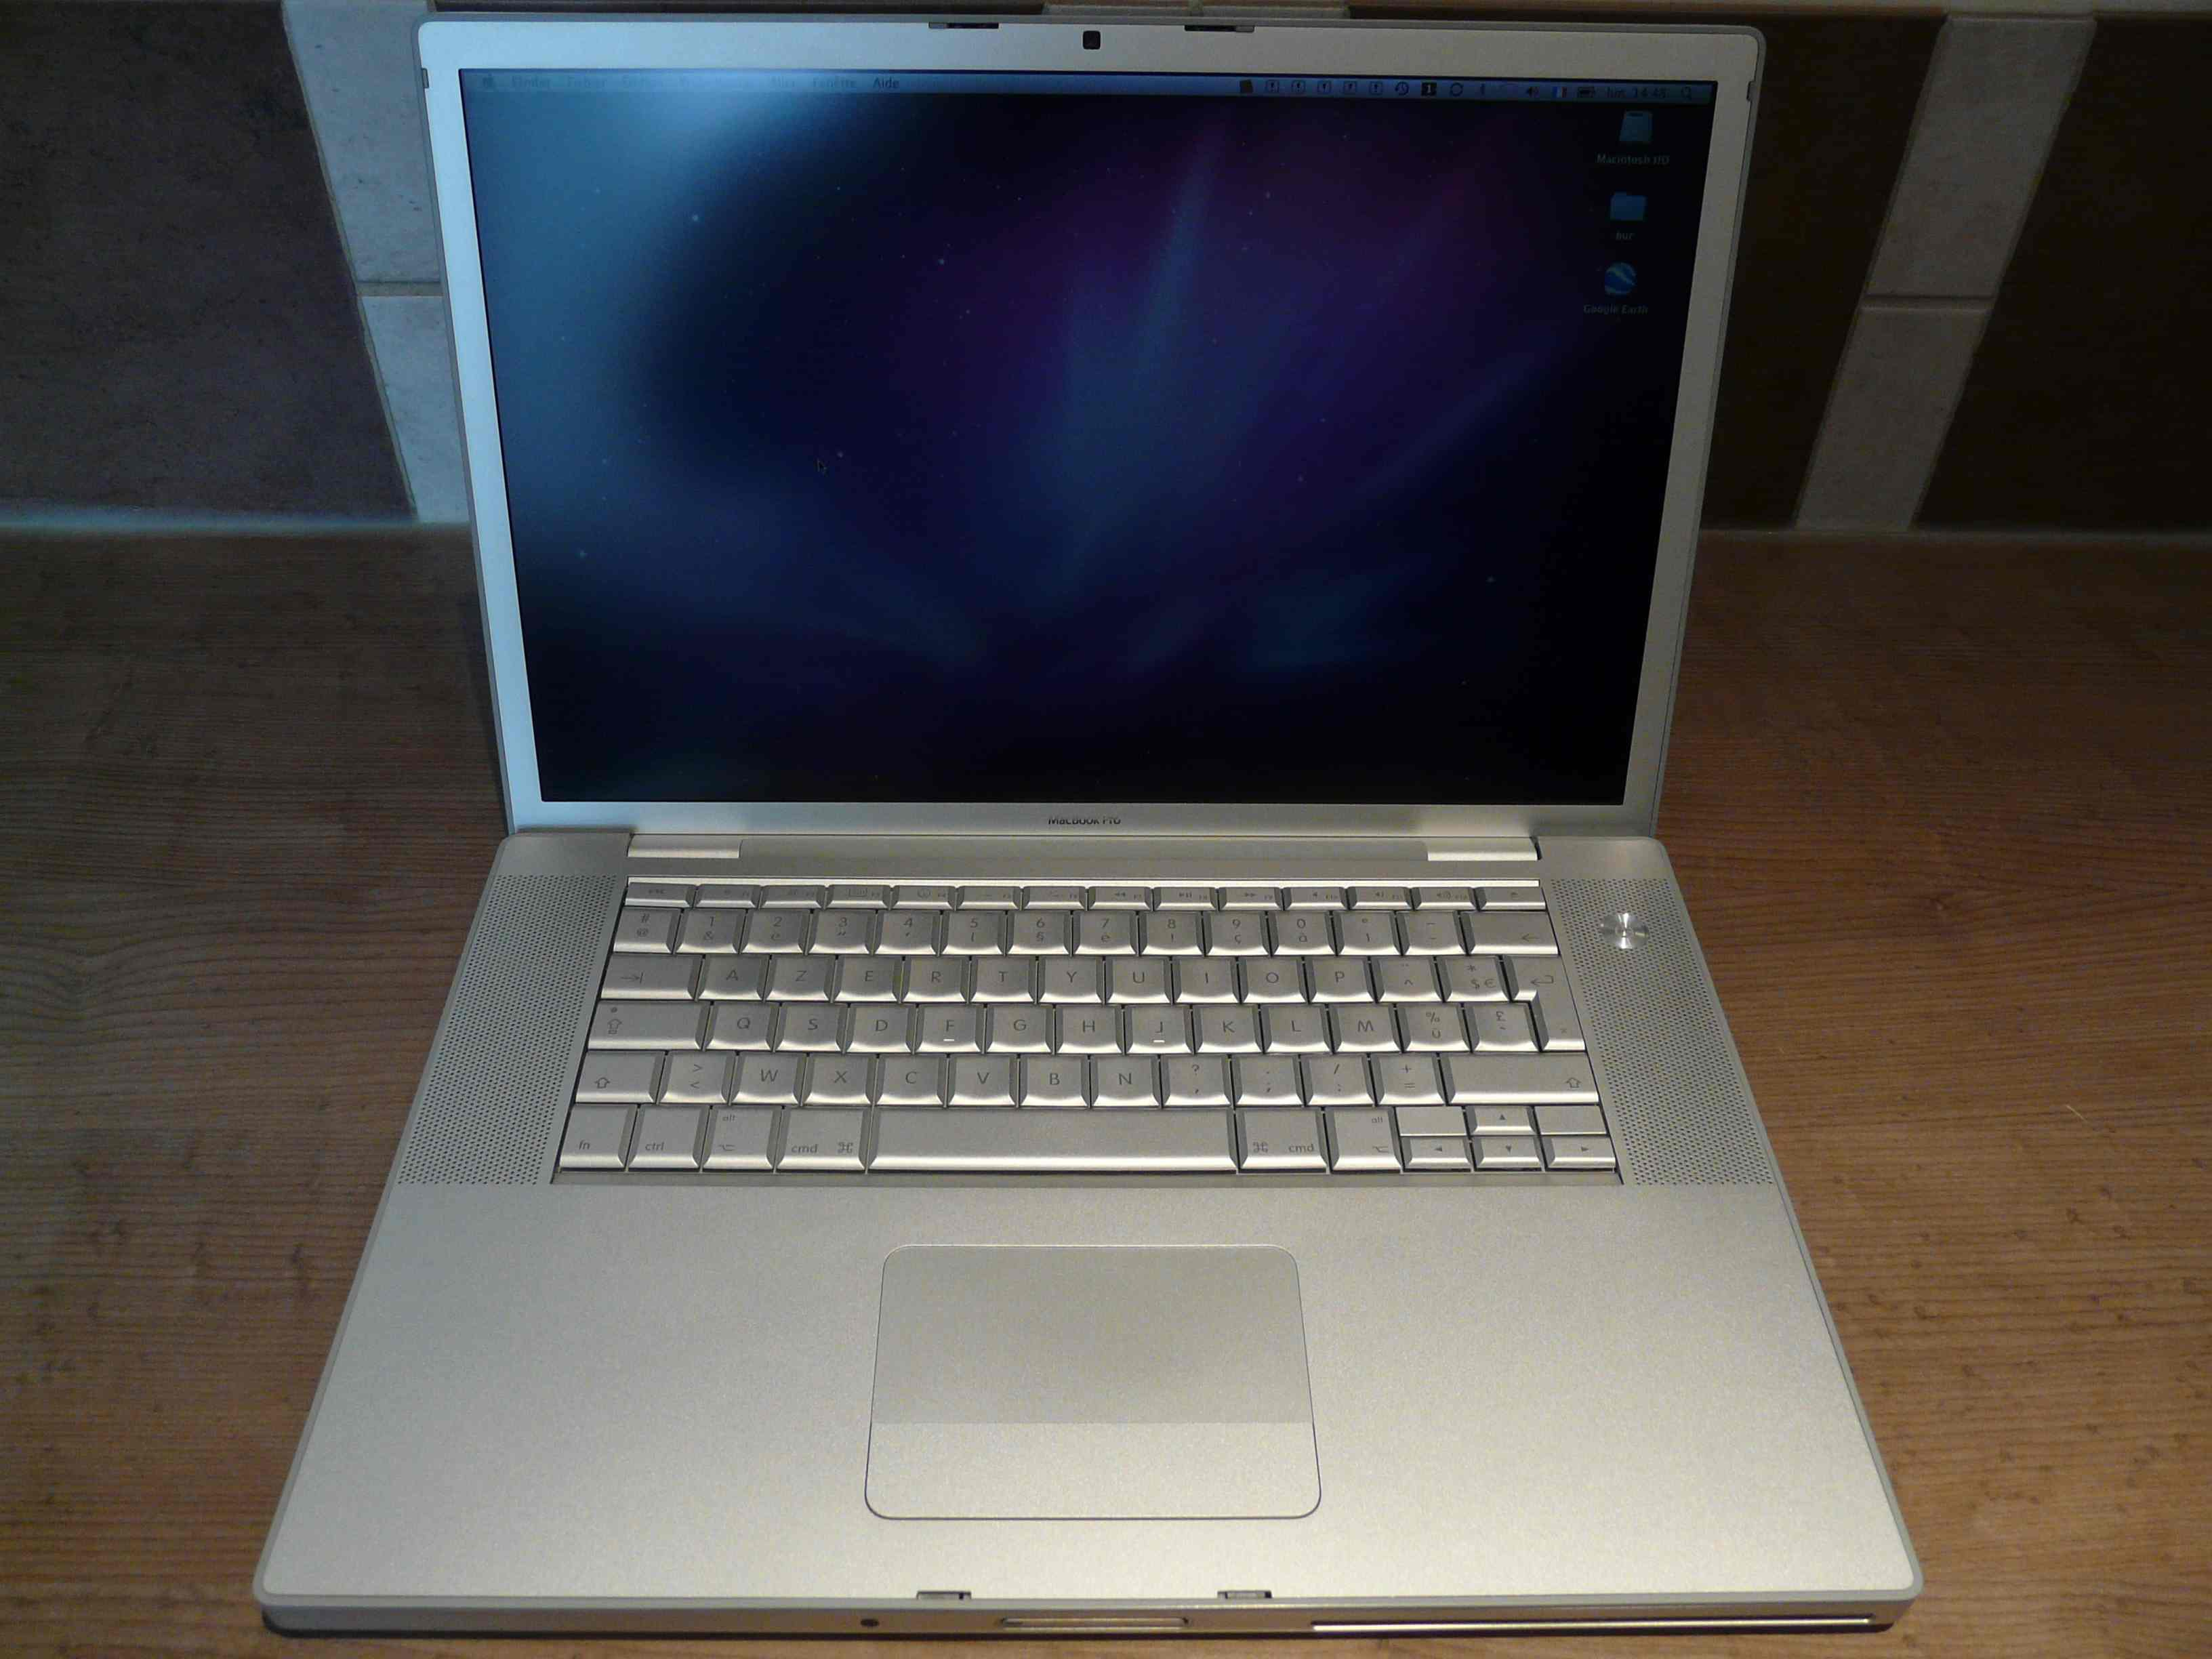 Macbook pro 2 4 core 2 duo / Bobby lupos